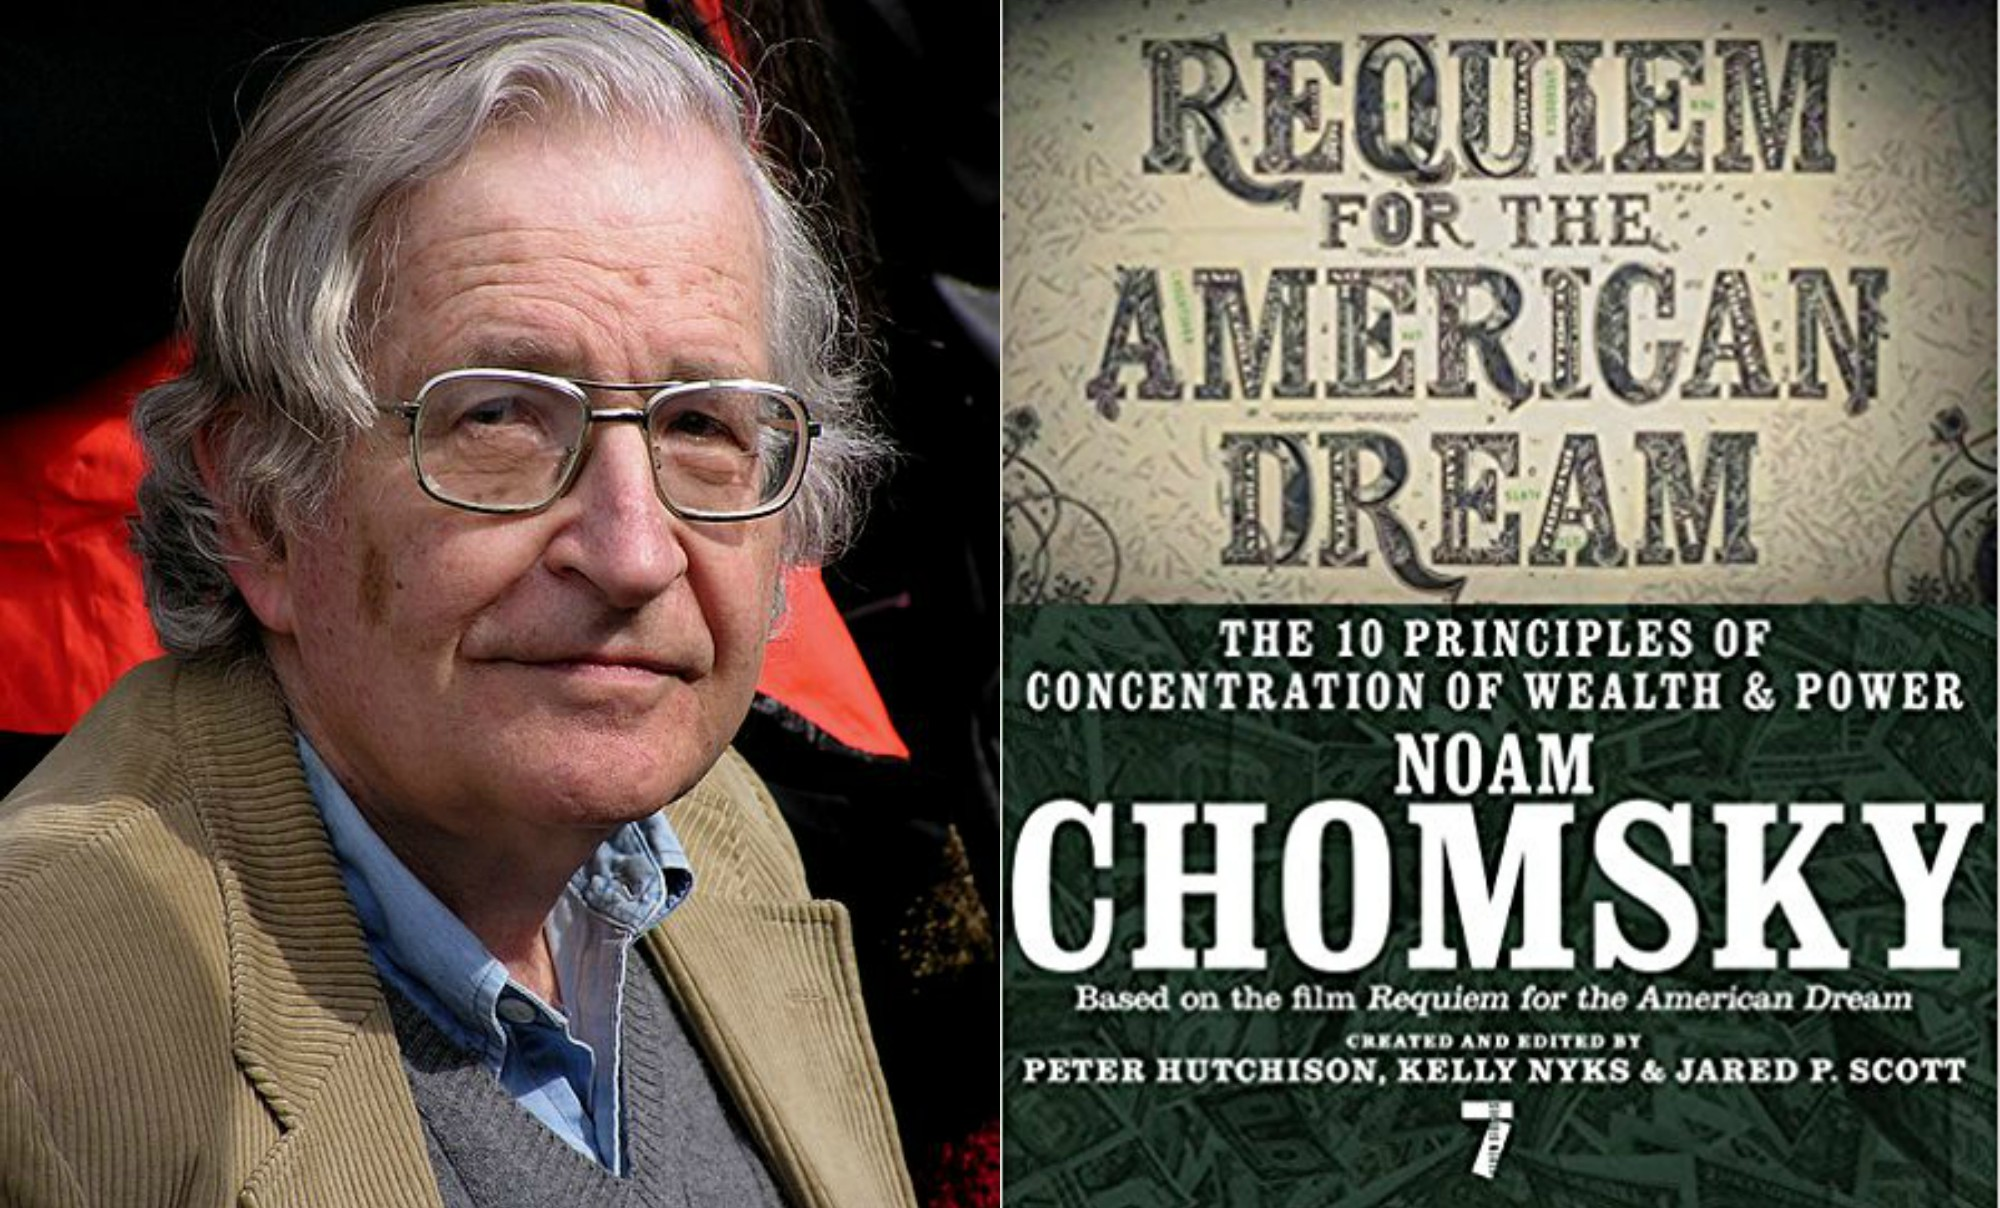 Chomsky 2 iPiccy-collage